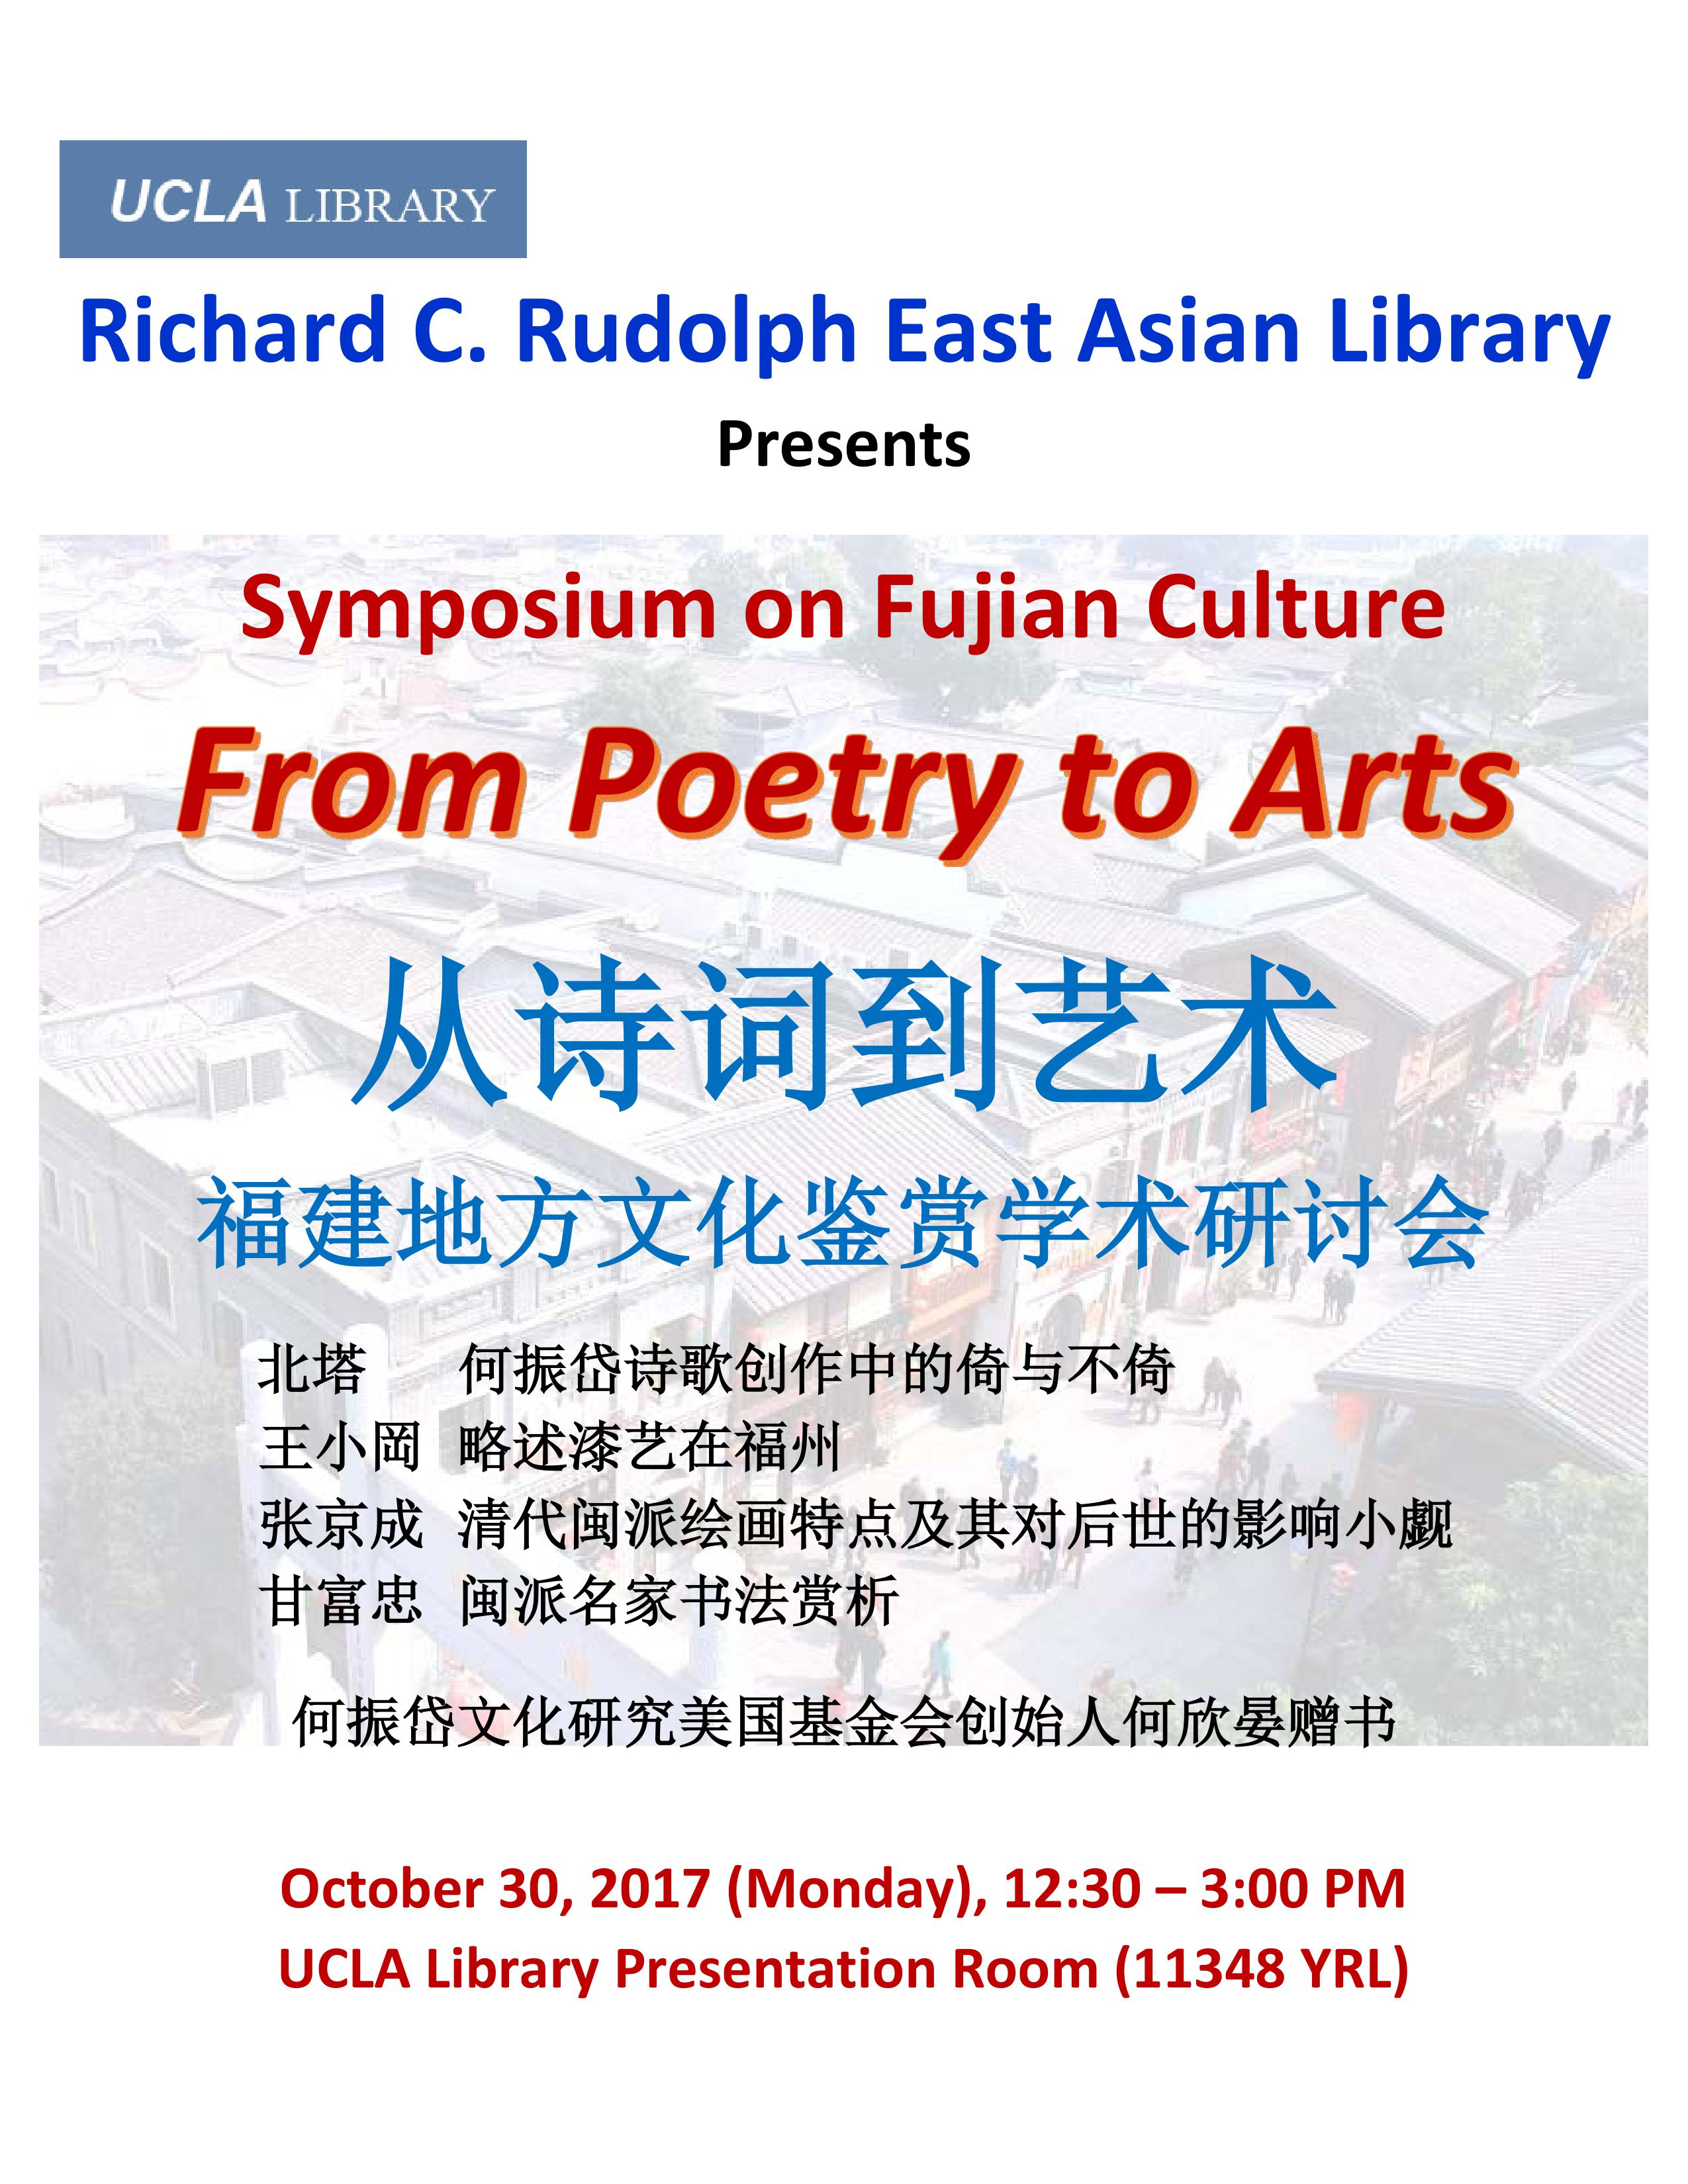 Symposium on Fujian Culture: From Poetry to Arts